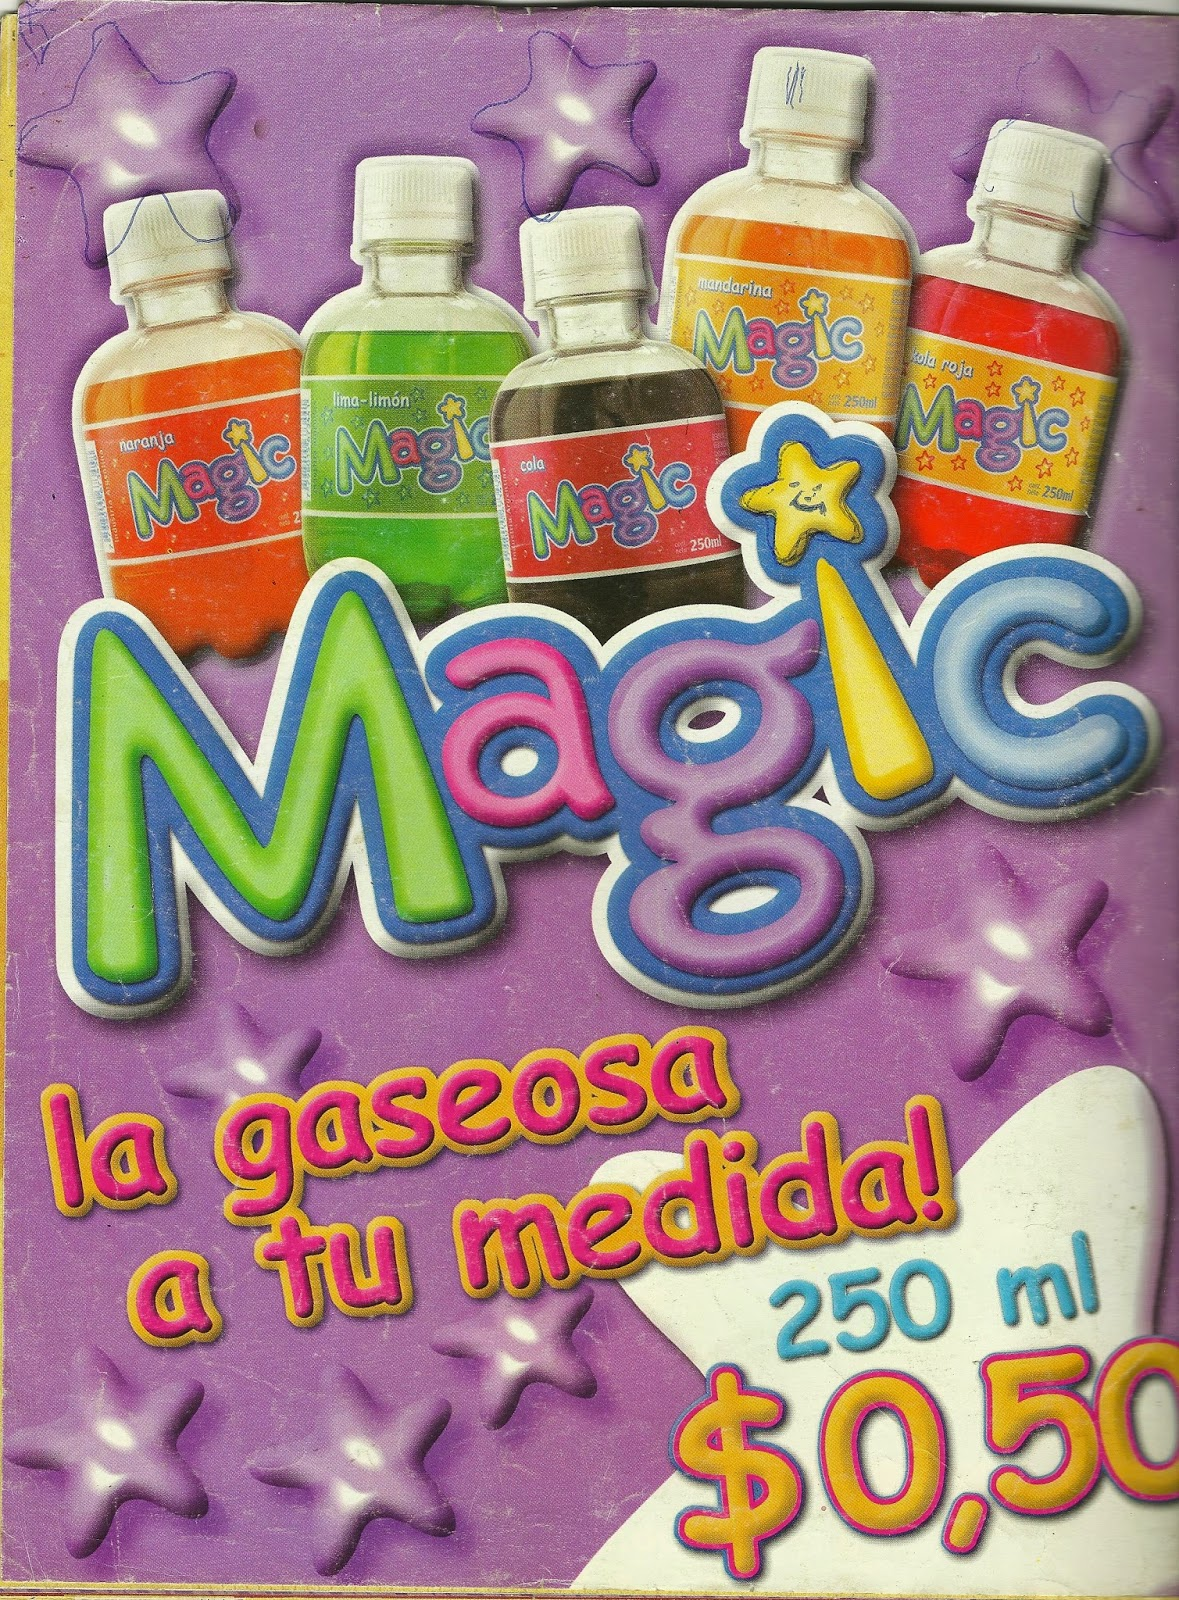 Magic Kids: Historia del canal y su caída